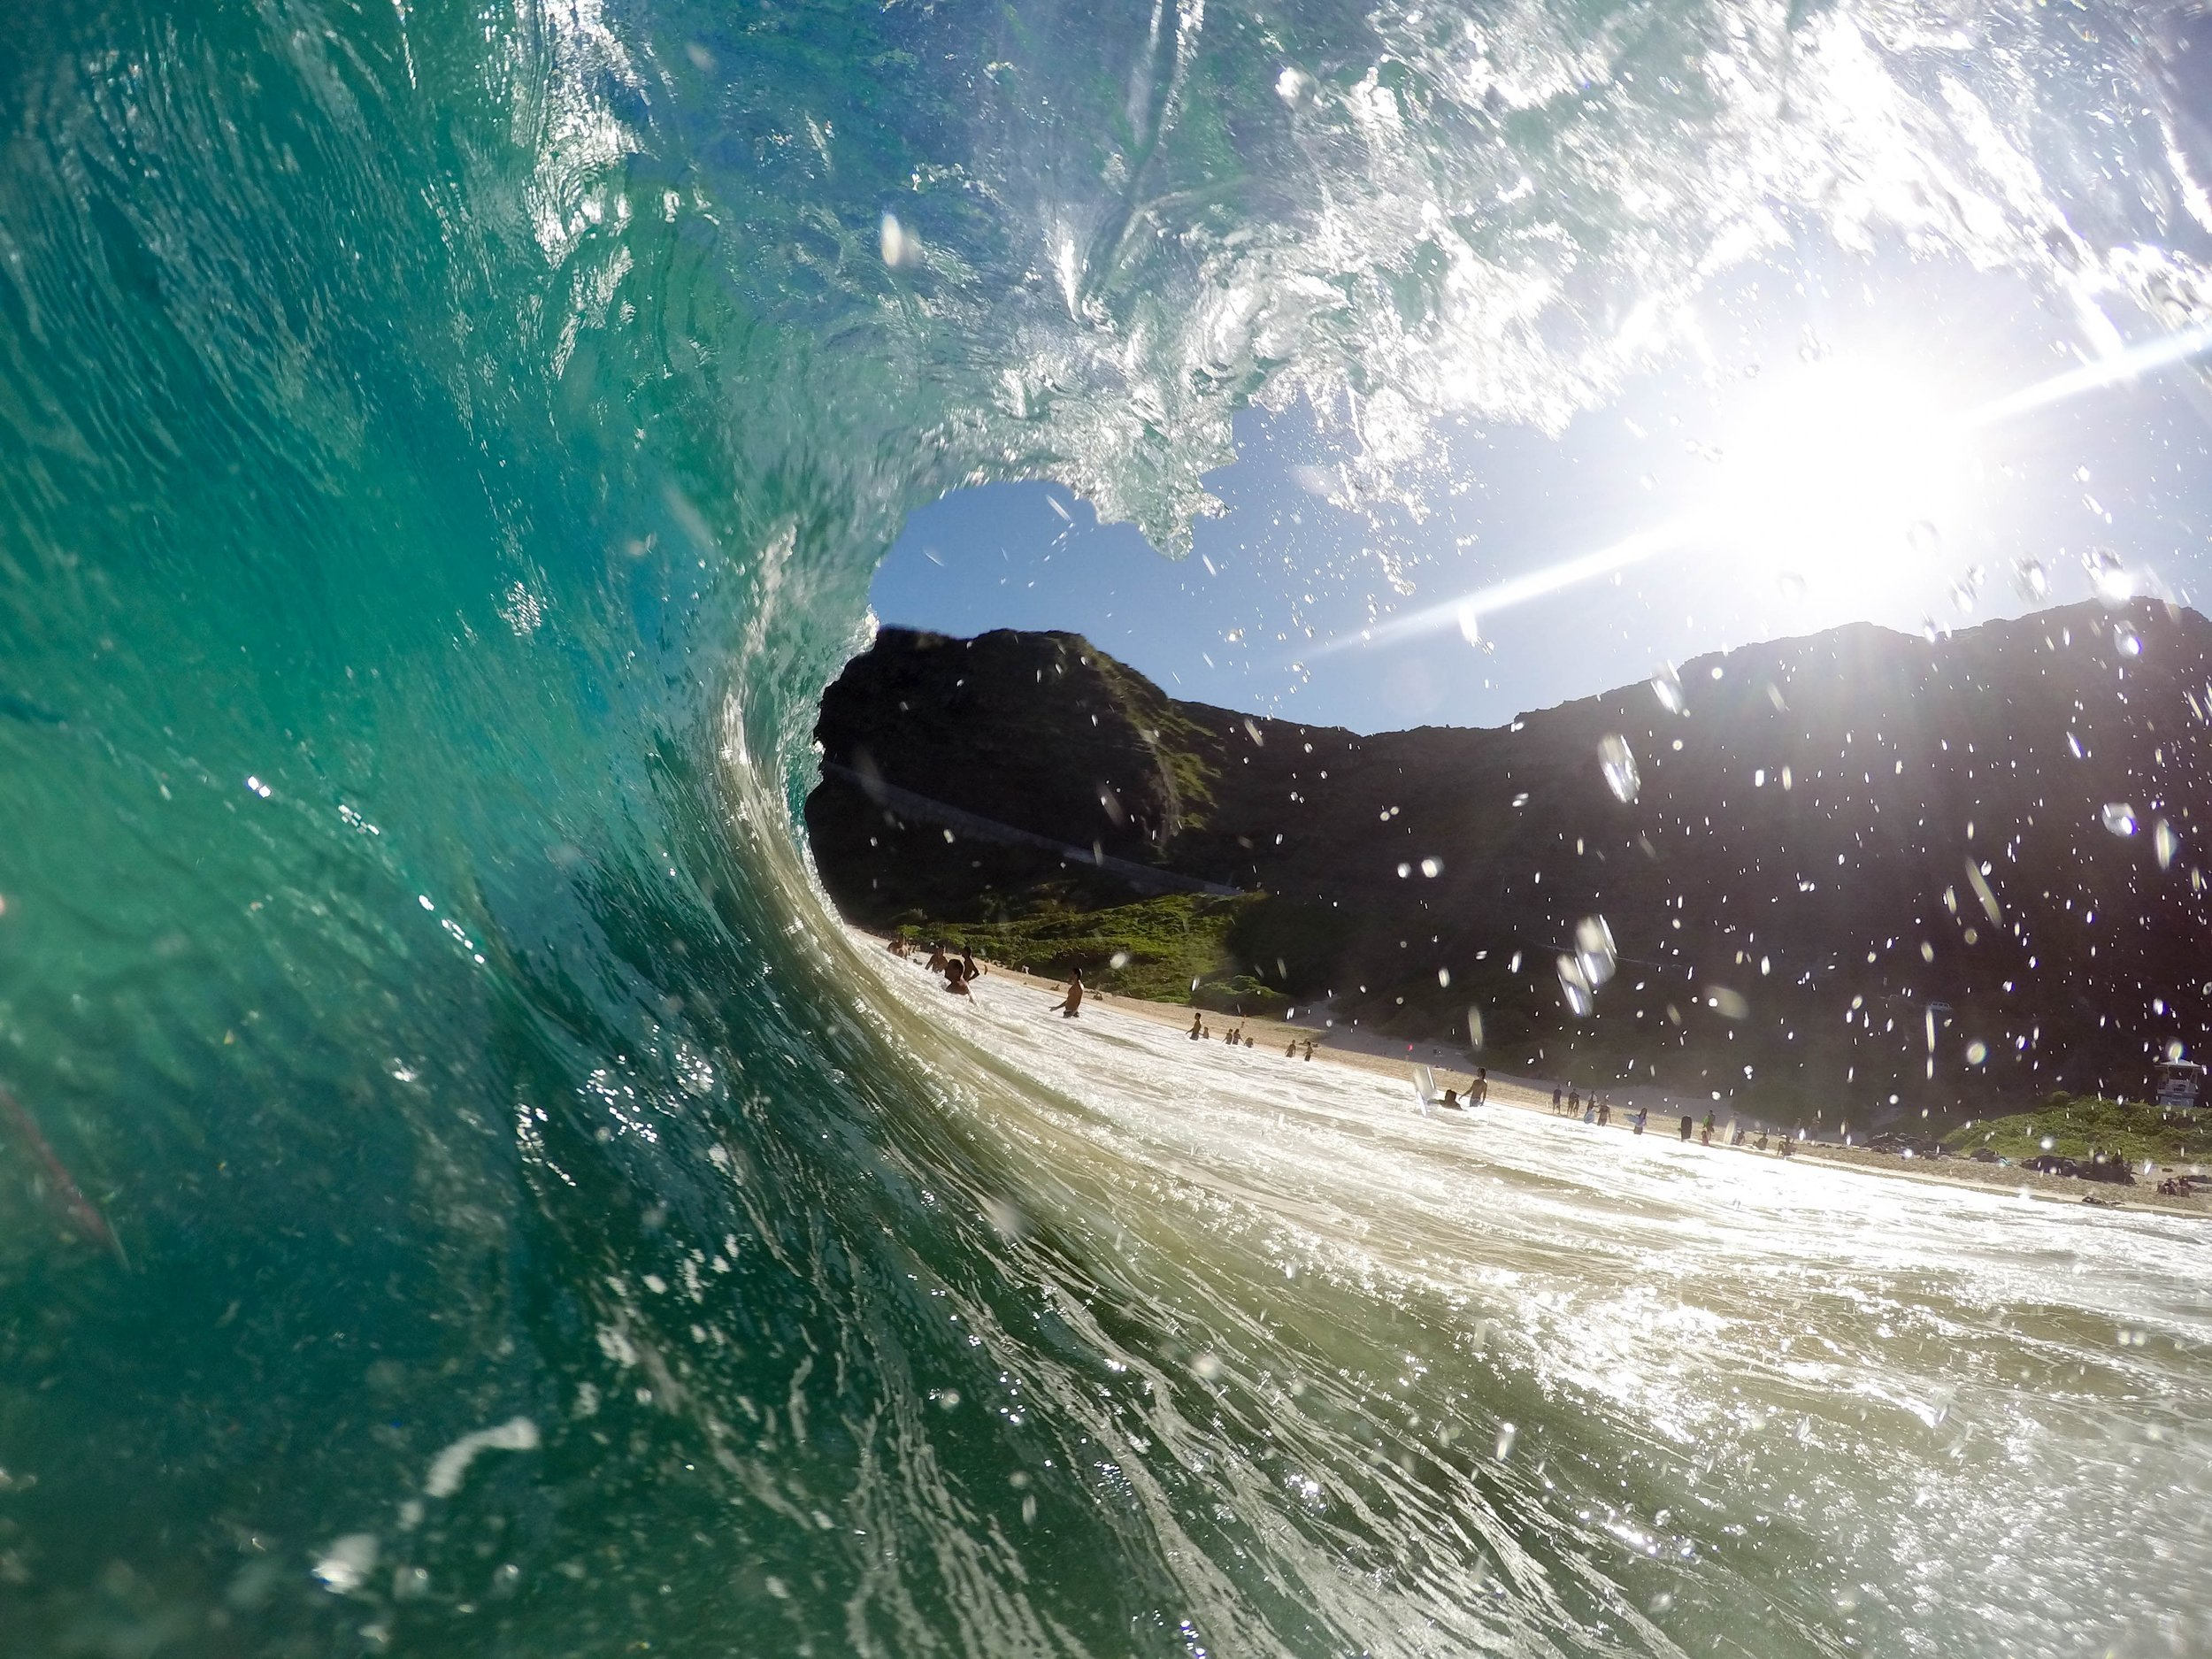 Waikiki is a great spot for beginner Surf lessons. If you want to go snorkeling checkout Haunama bay or Sharks Cove. My top 2 favorite beaches are Makapu'u and Makaha beach!